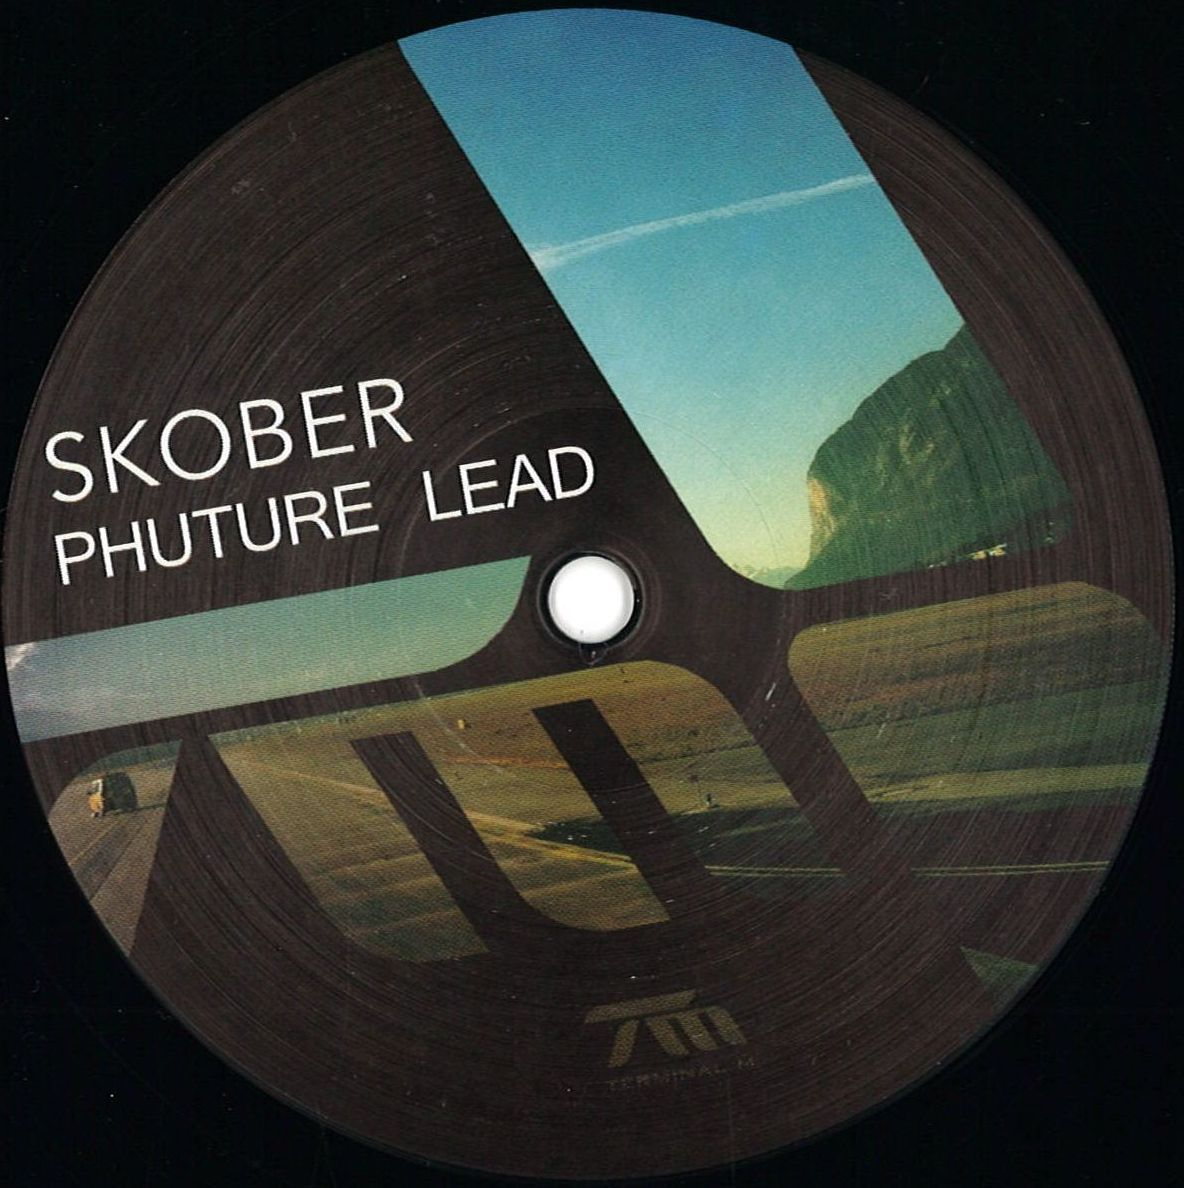 Skober Phuture Lead Terminal M Records Term139 Vinyl